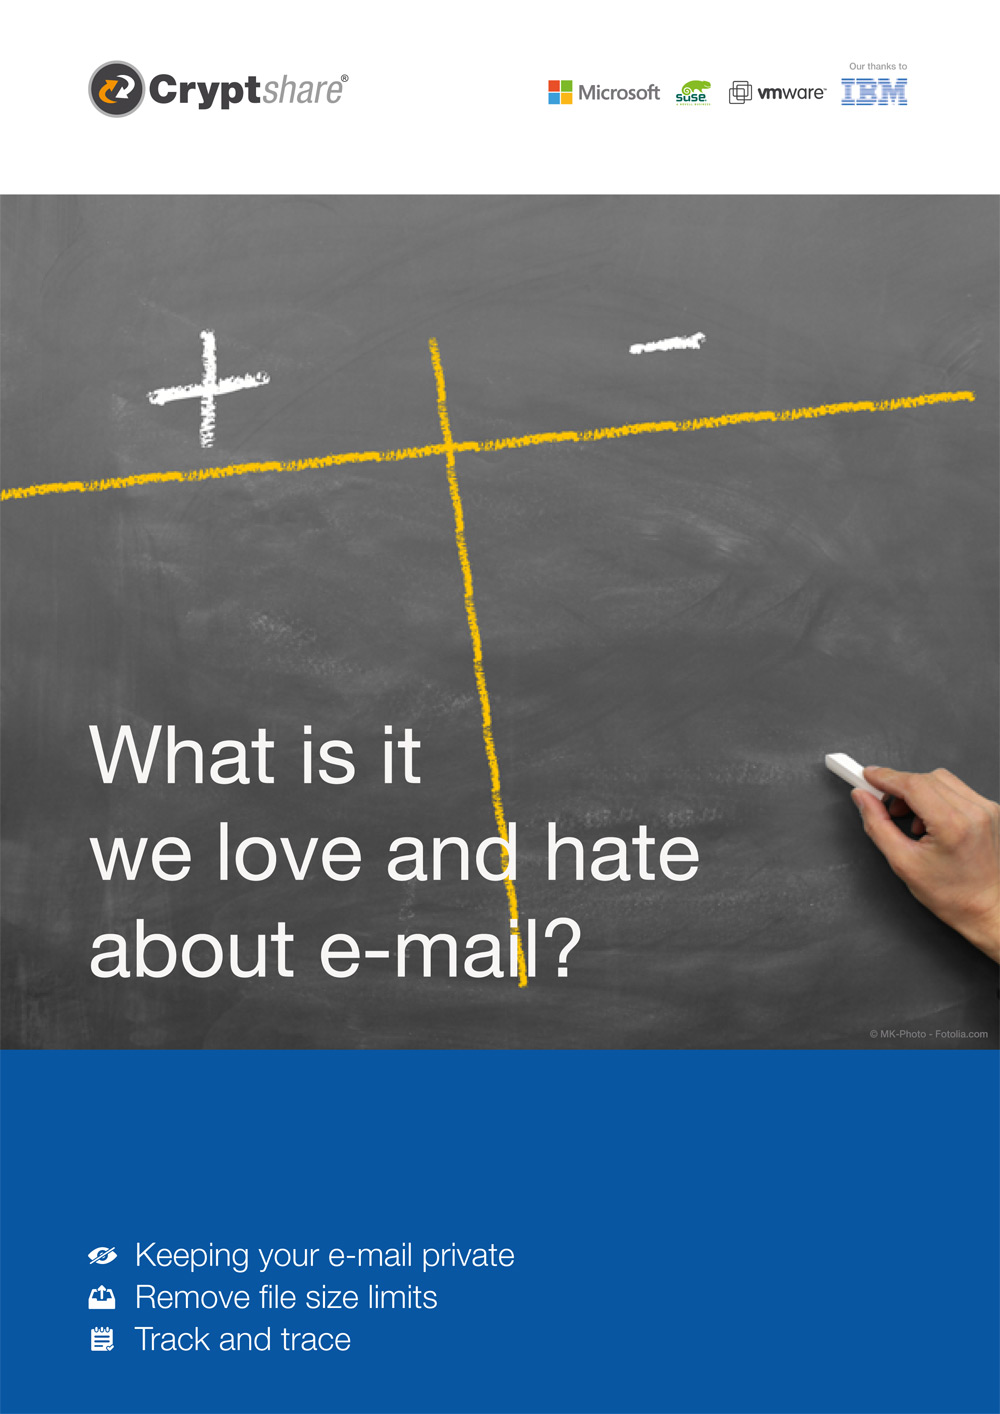 Cryptshare-What_is_it_we_love_and_hate_about_email-05282019-EU-EN-web